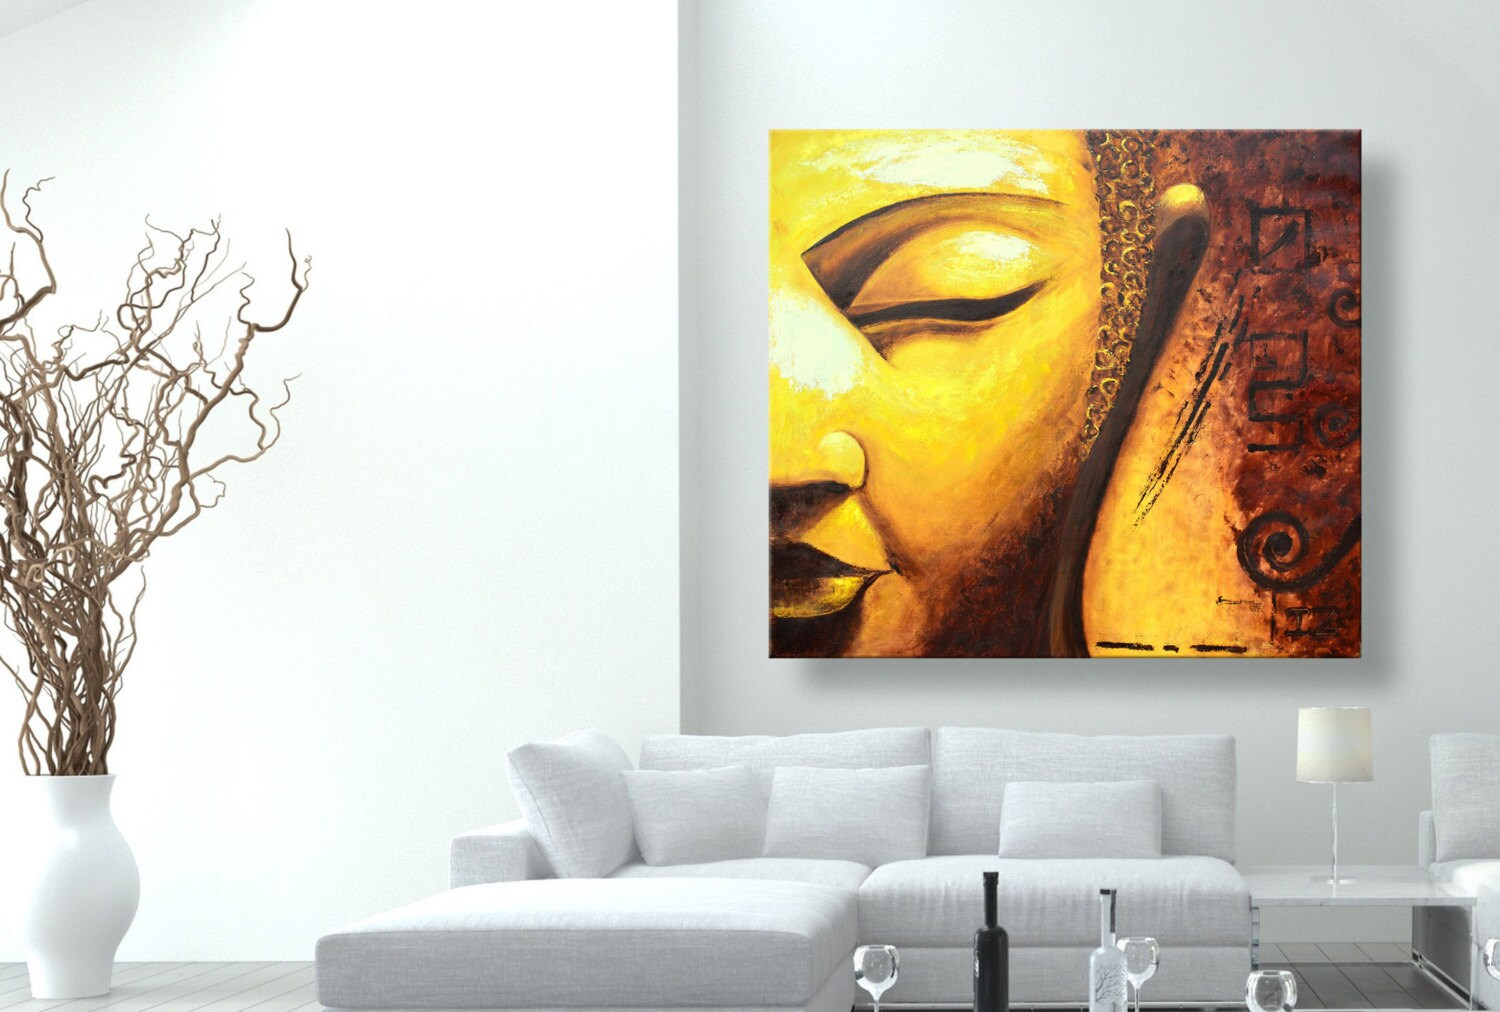 Oil painting paintings on canvas Golden Buddha